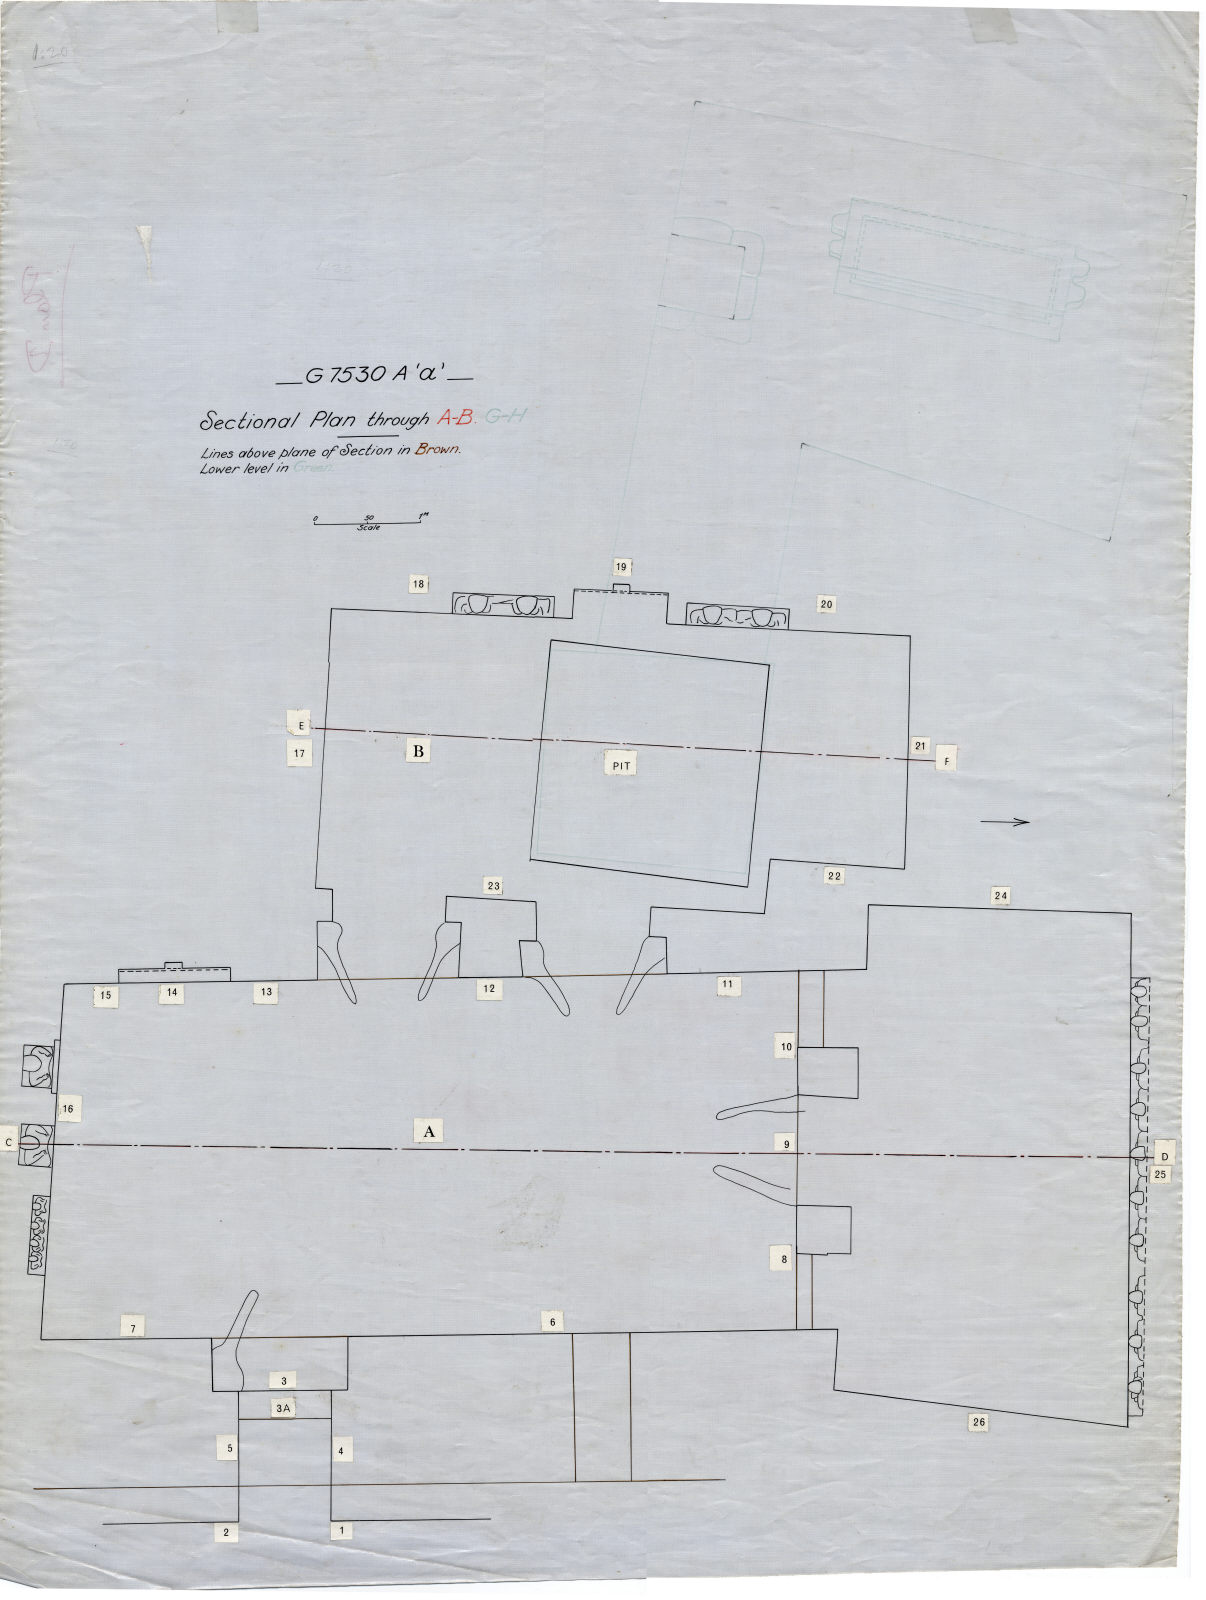 Maps and plans: G 7530, Shaft A, plan